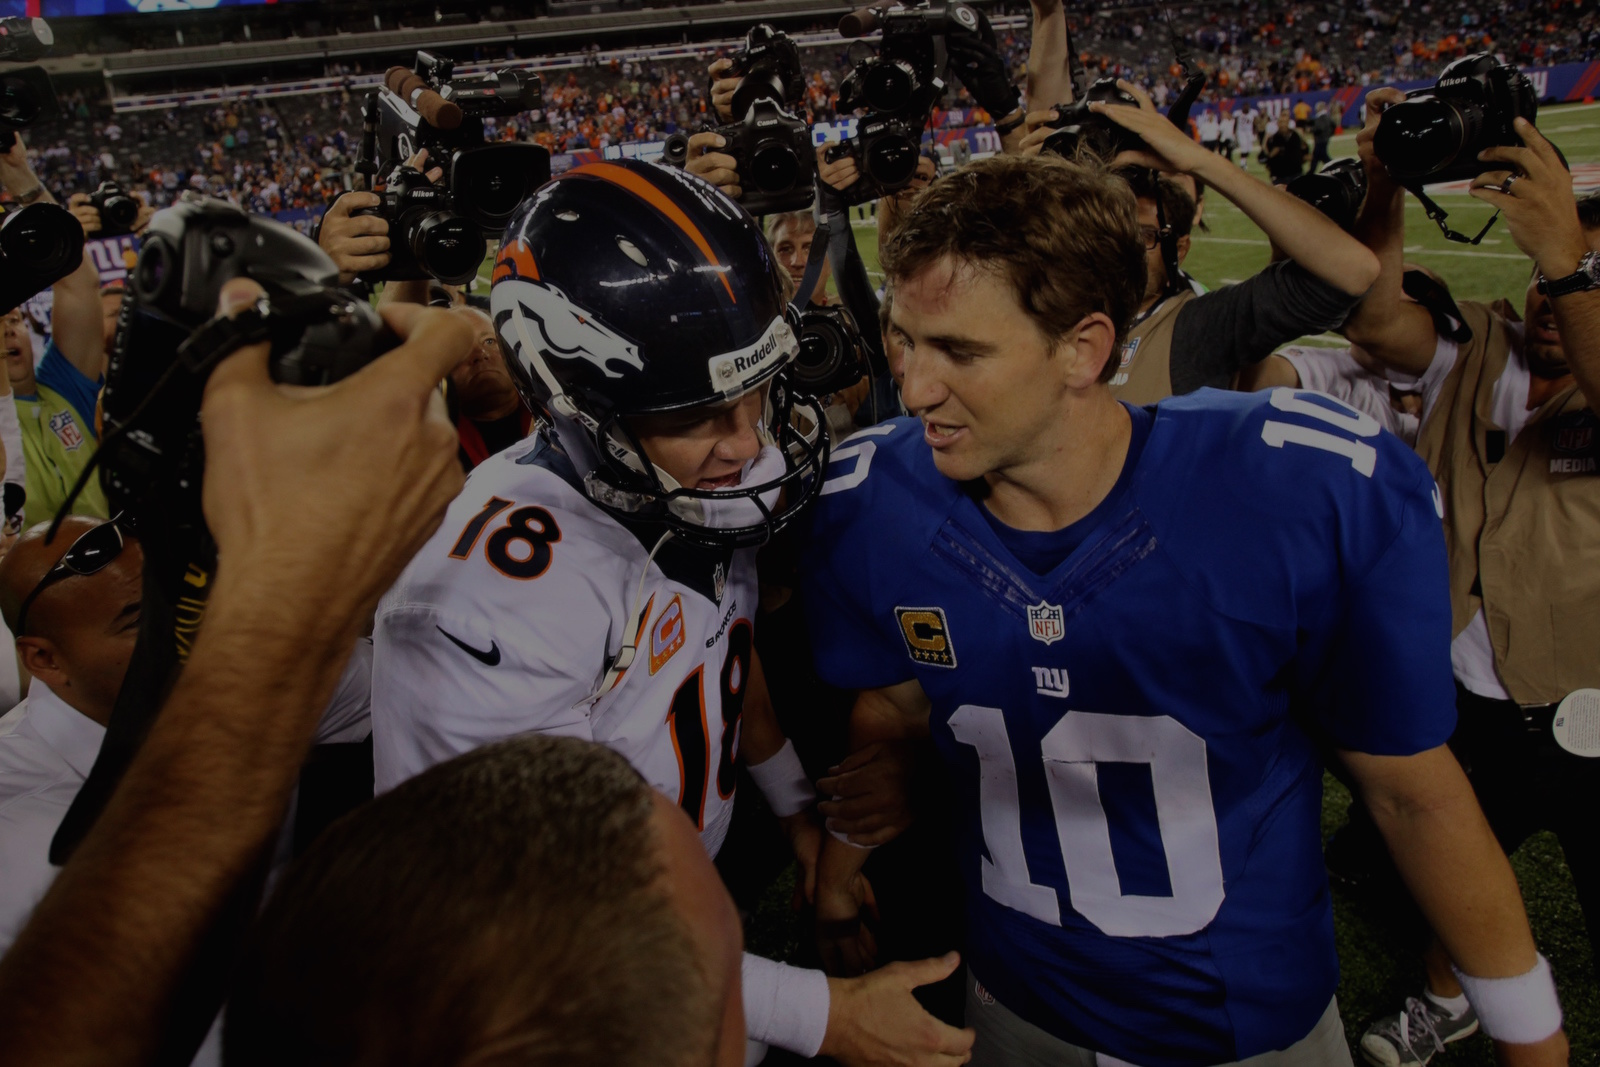 comparison manning brothers